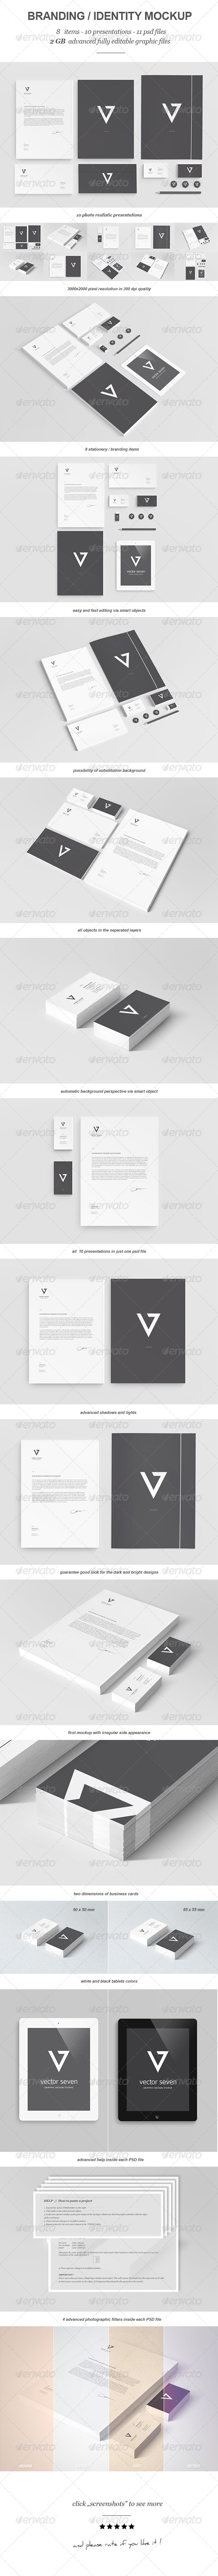 Branding / Identity Mock-up II - Stationery Print